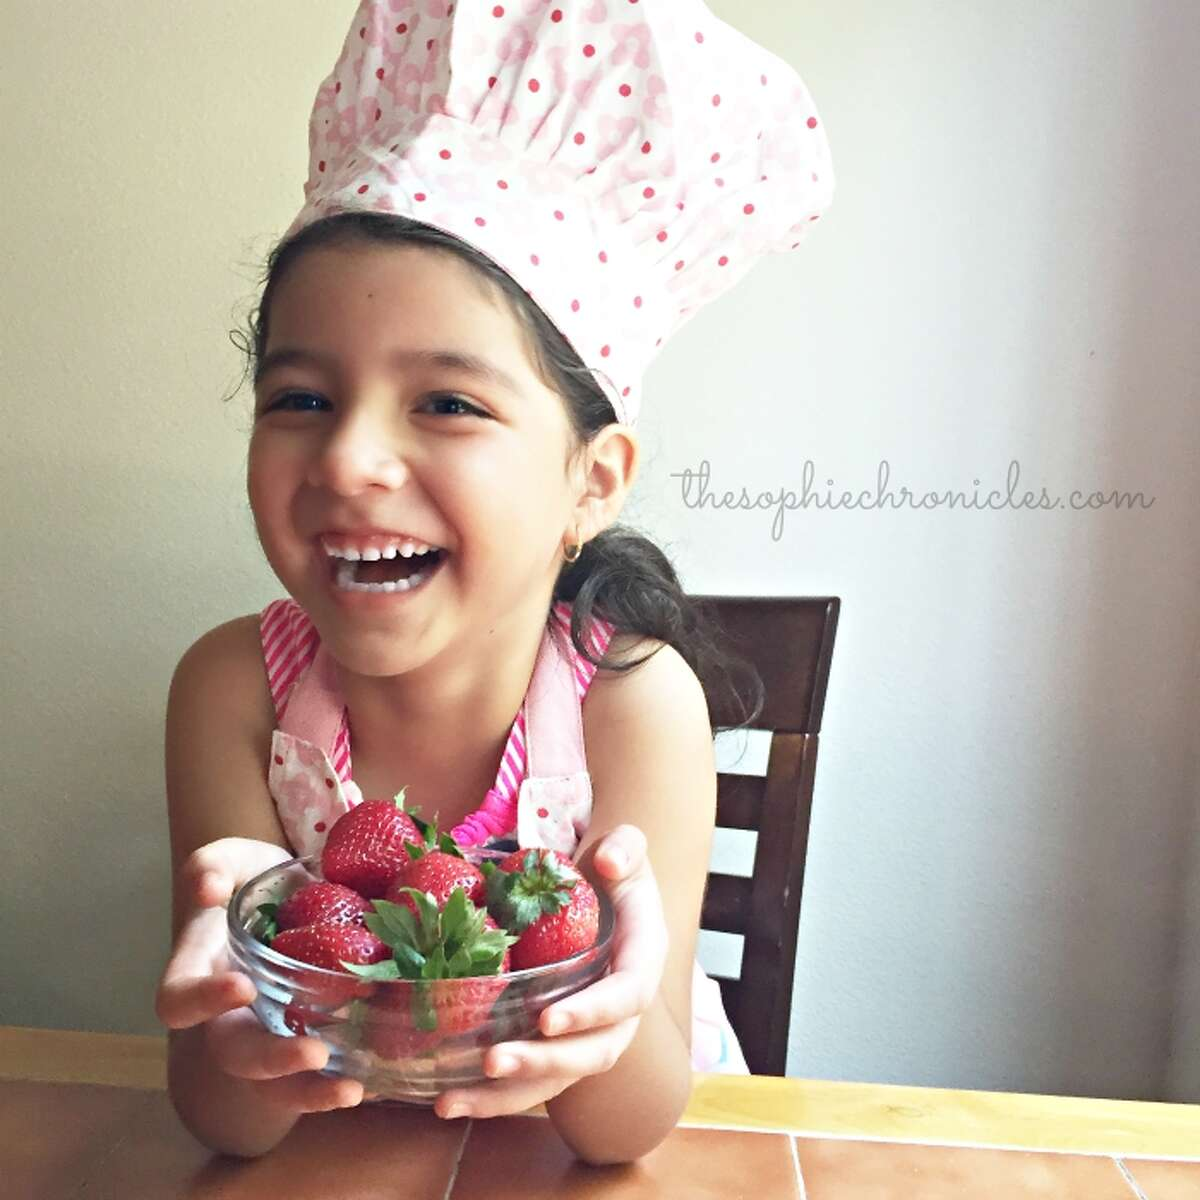 Sophie Arellano won second place in the Kids Berry Cook Off Contest with her recipe for Chocolate Chip Cookies with Strawberry Marshmallow Filling